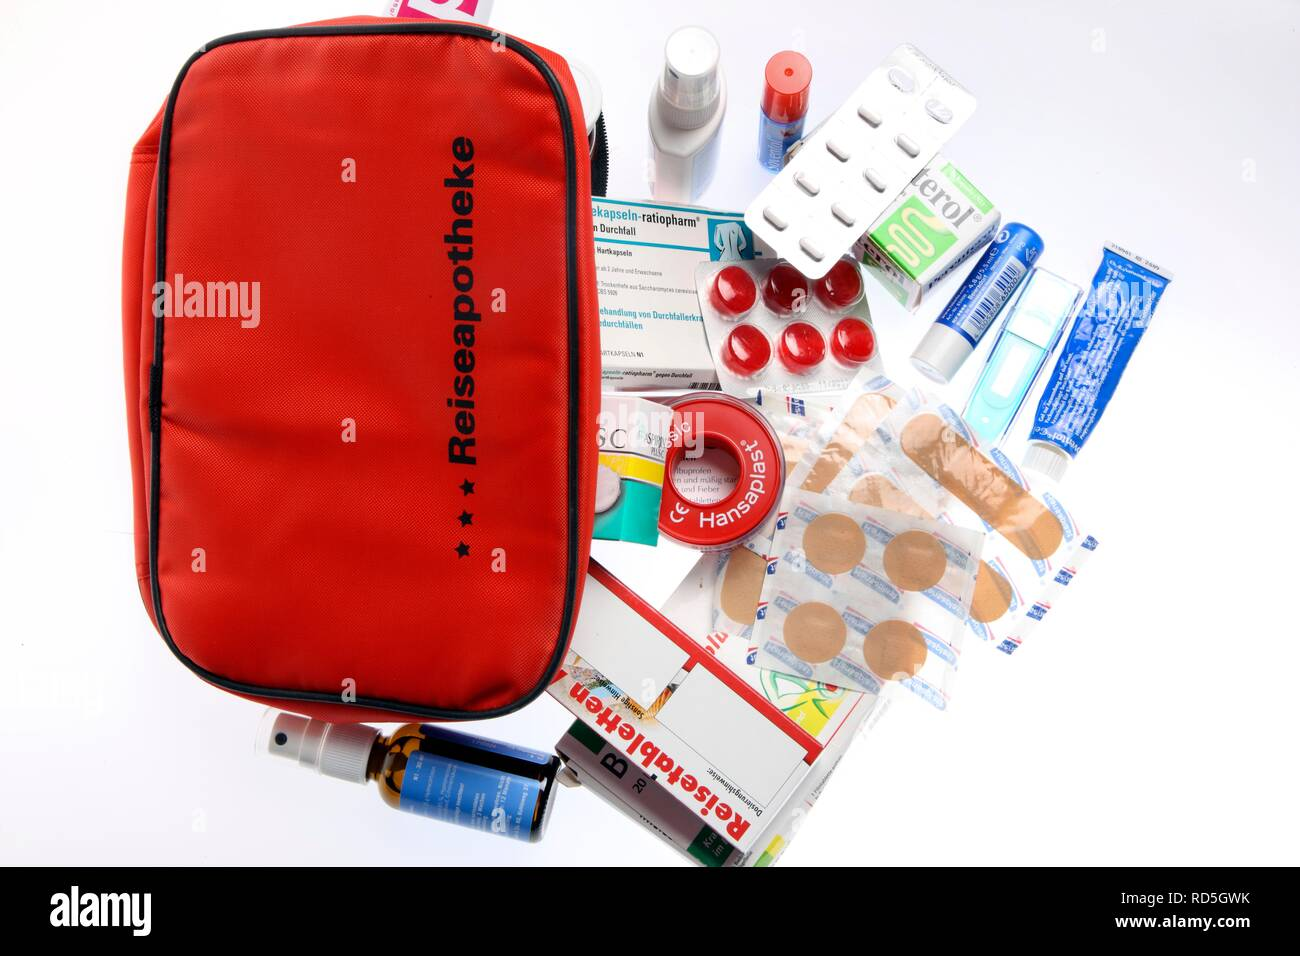 First-aid kit, drugs and bandages - Stock Image